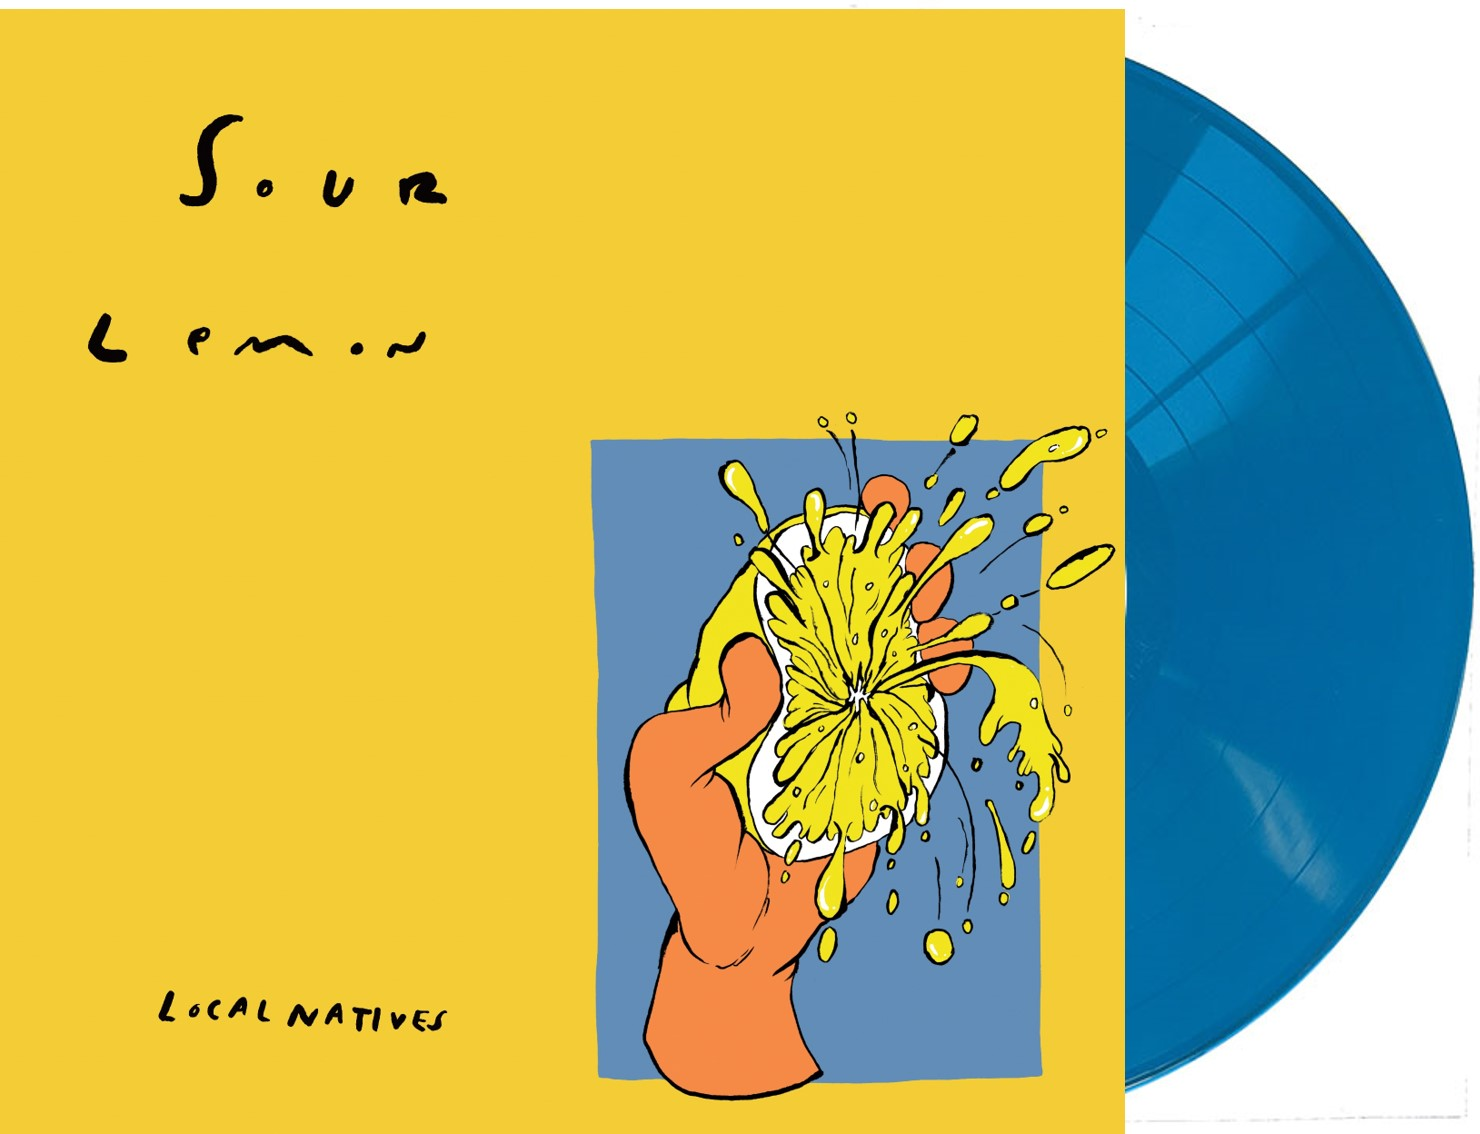 Local Natives - Sour Lemon EP [10in Turquoise Blue Vinyl]